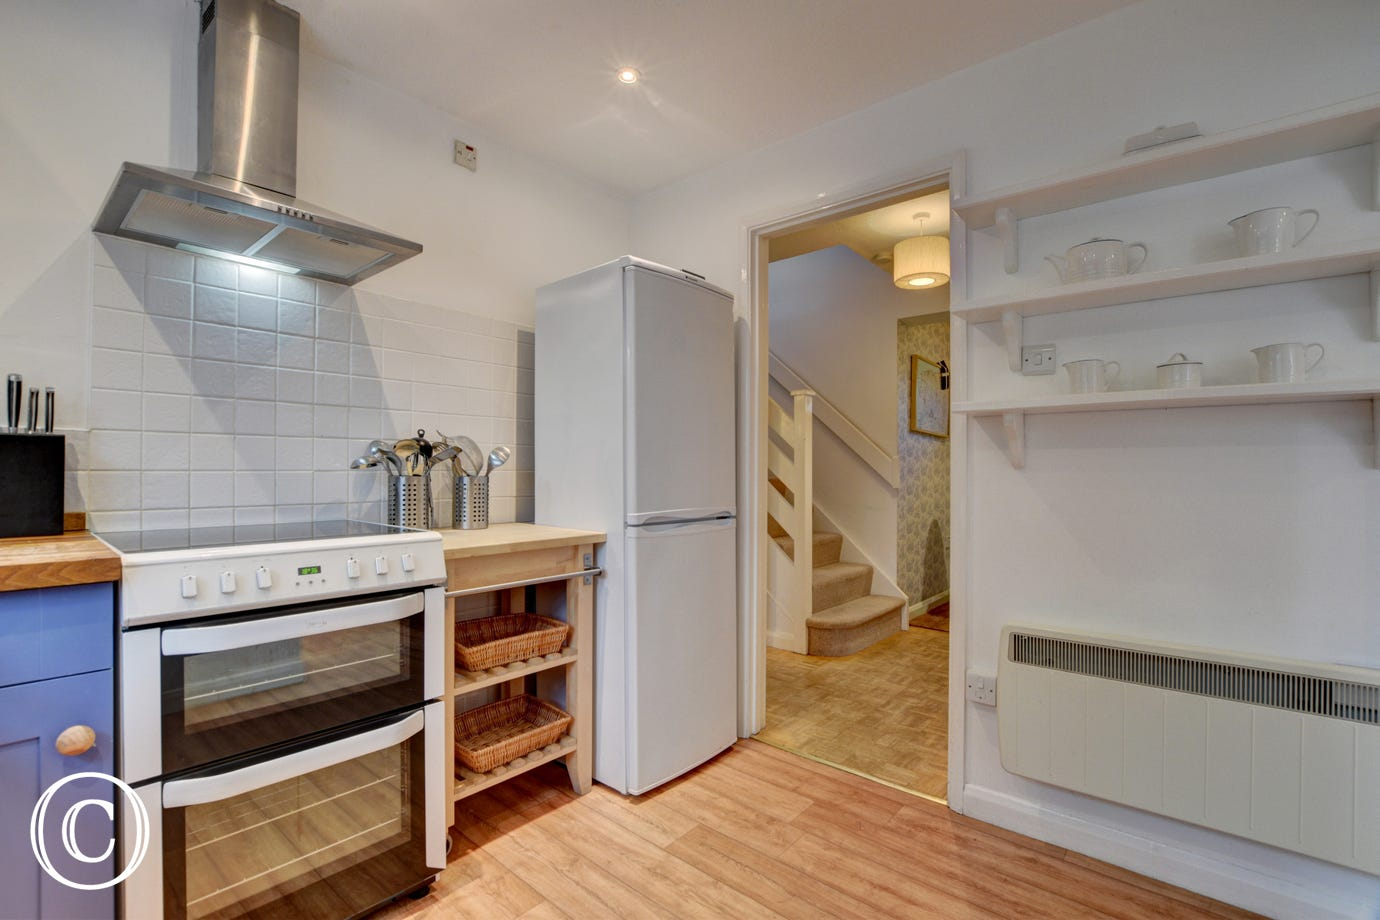 Kitchen with electric cooker, microwave and fridge/freezer